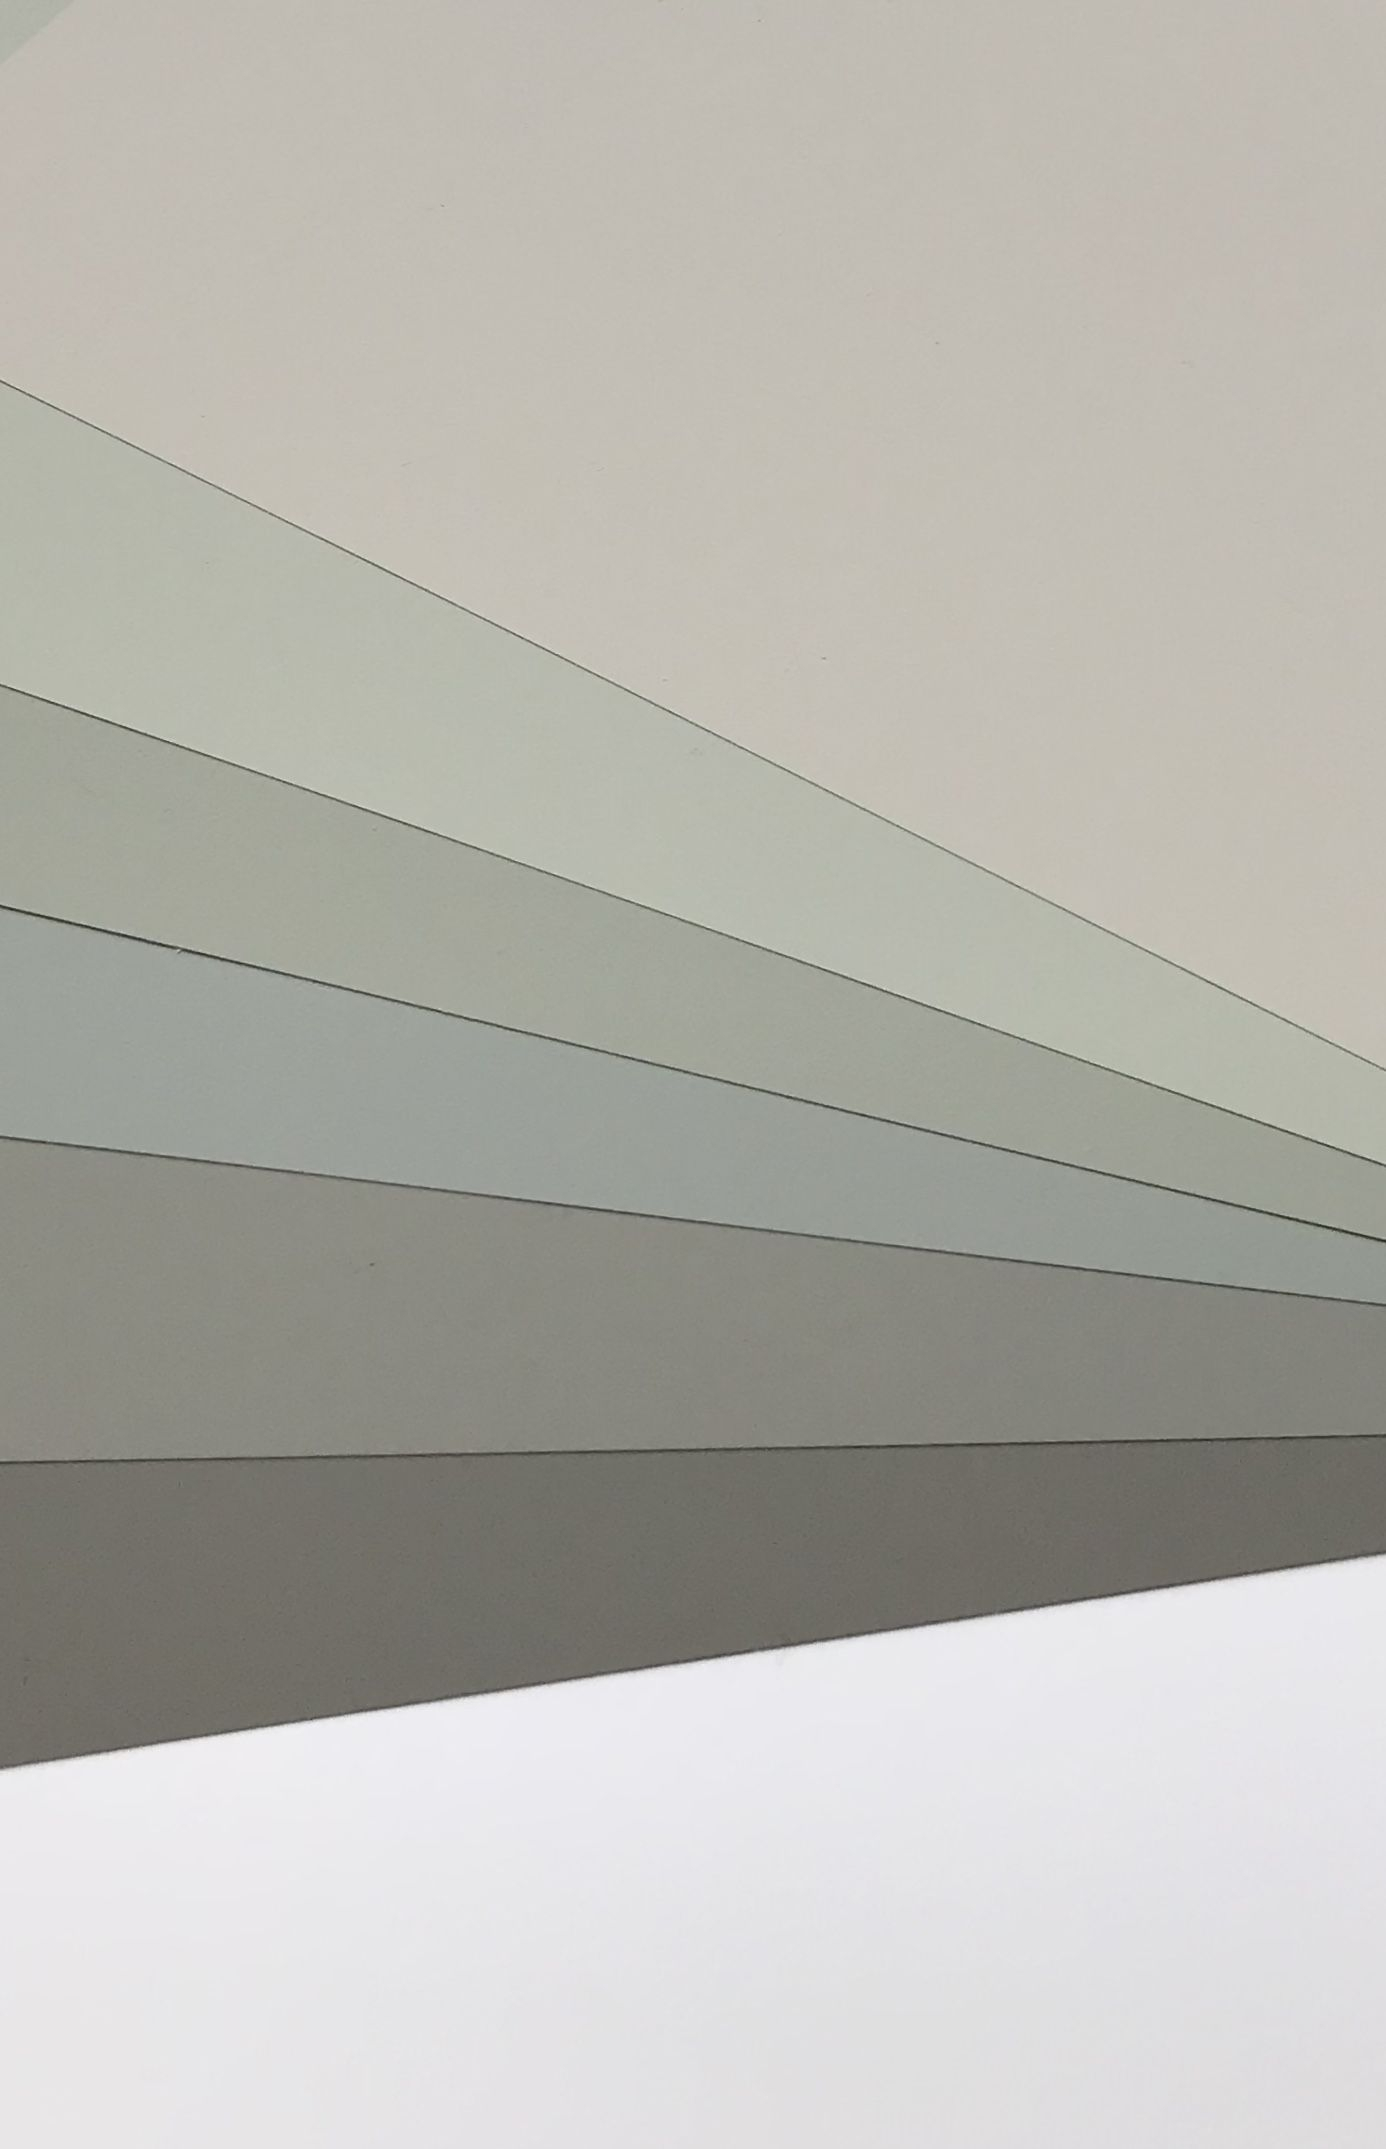 Sacred Space Paint Colors muted gray earth tones soft blue ...  Muted Blue Grey Paint Color